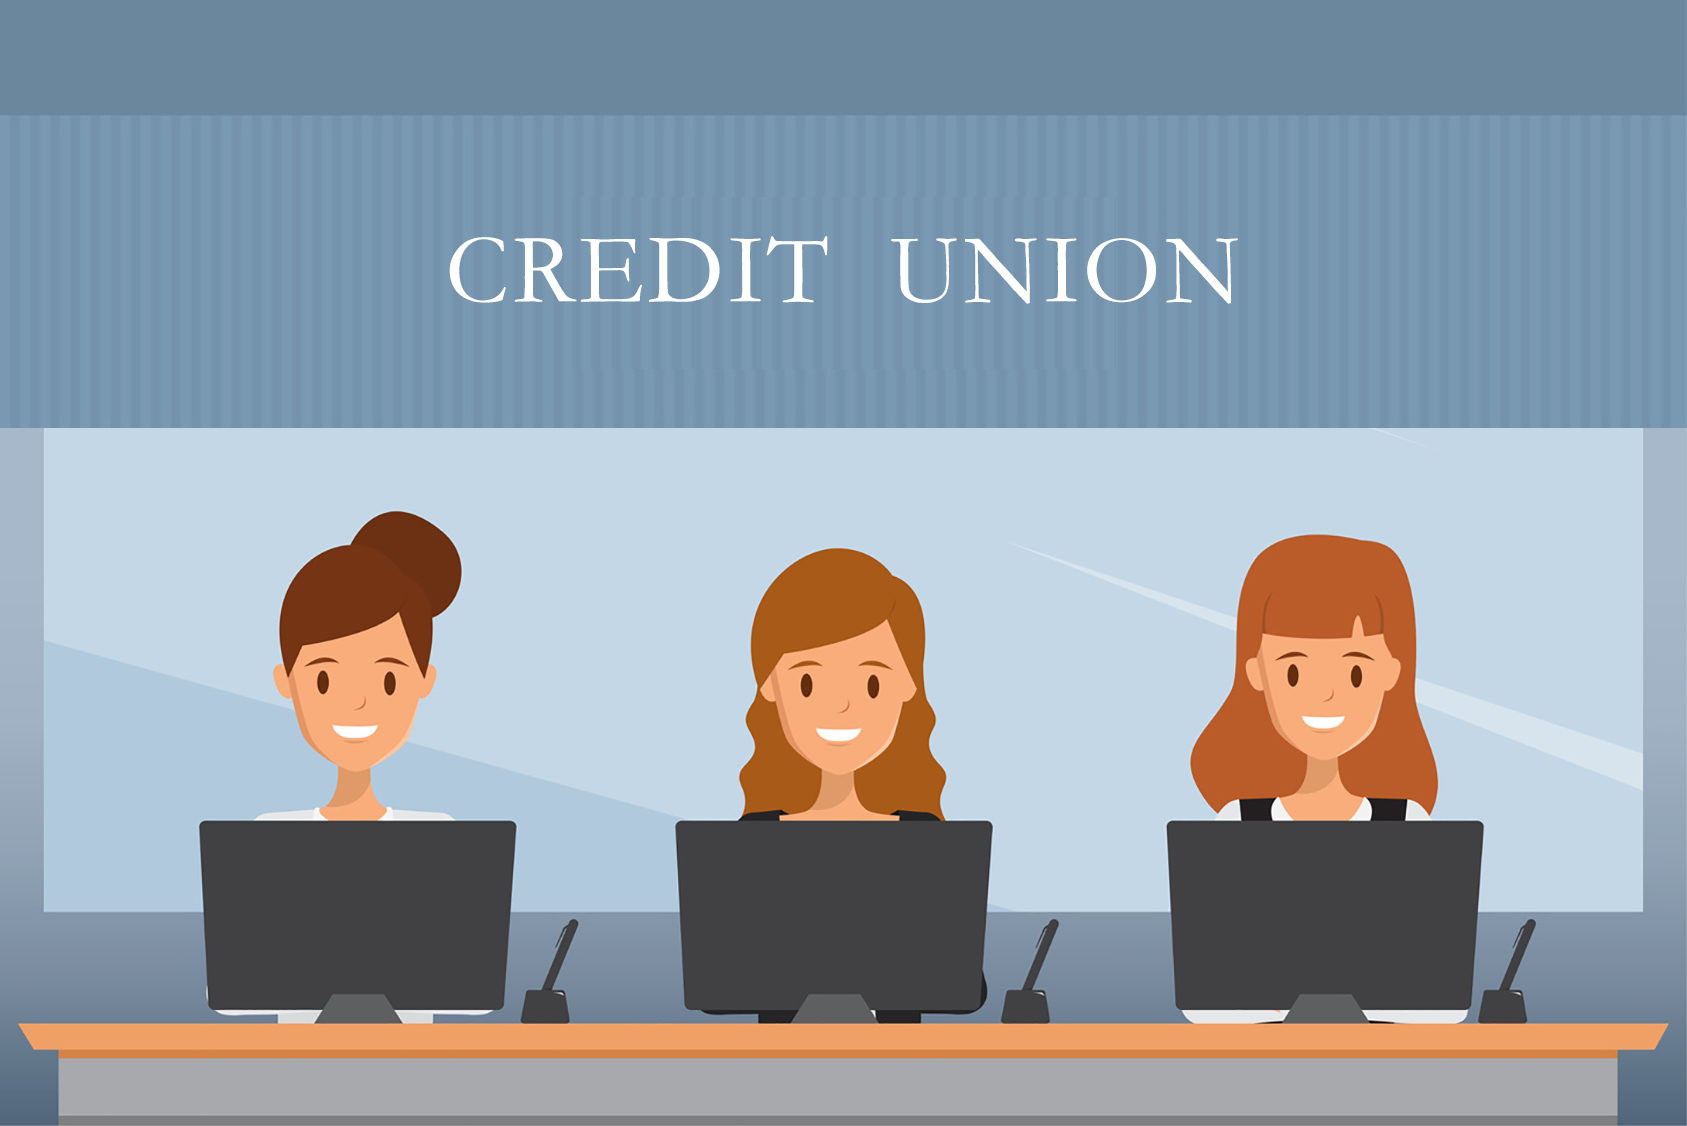 Credit Union Results: Struggling With a Purpose